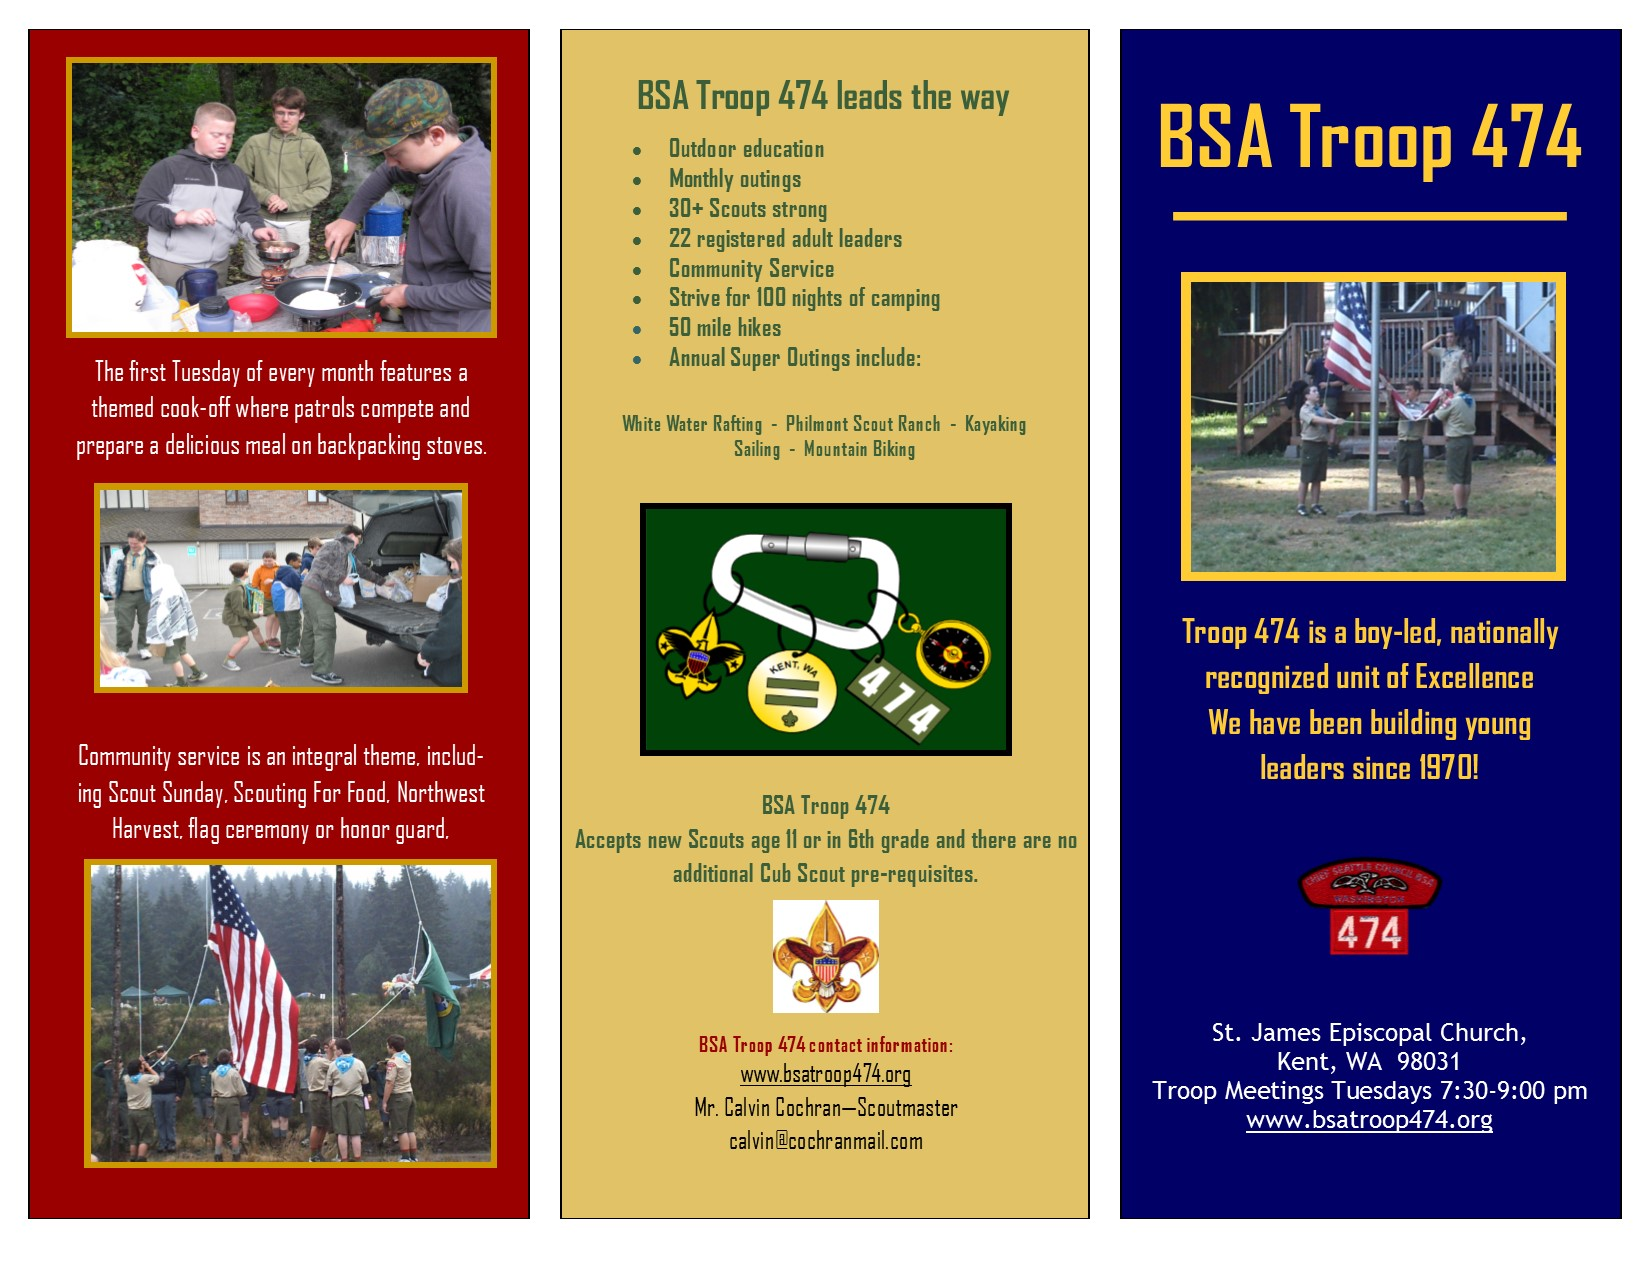 See some examples of Troop 474 activities in our flyer.